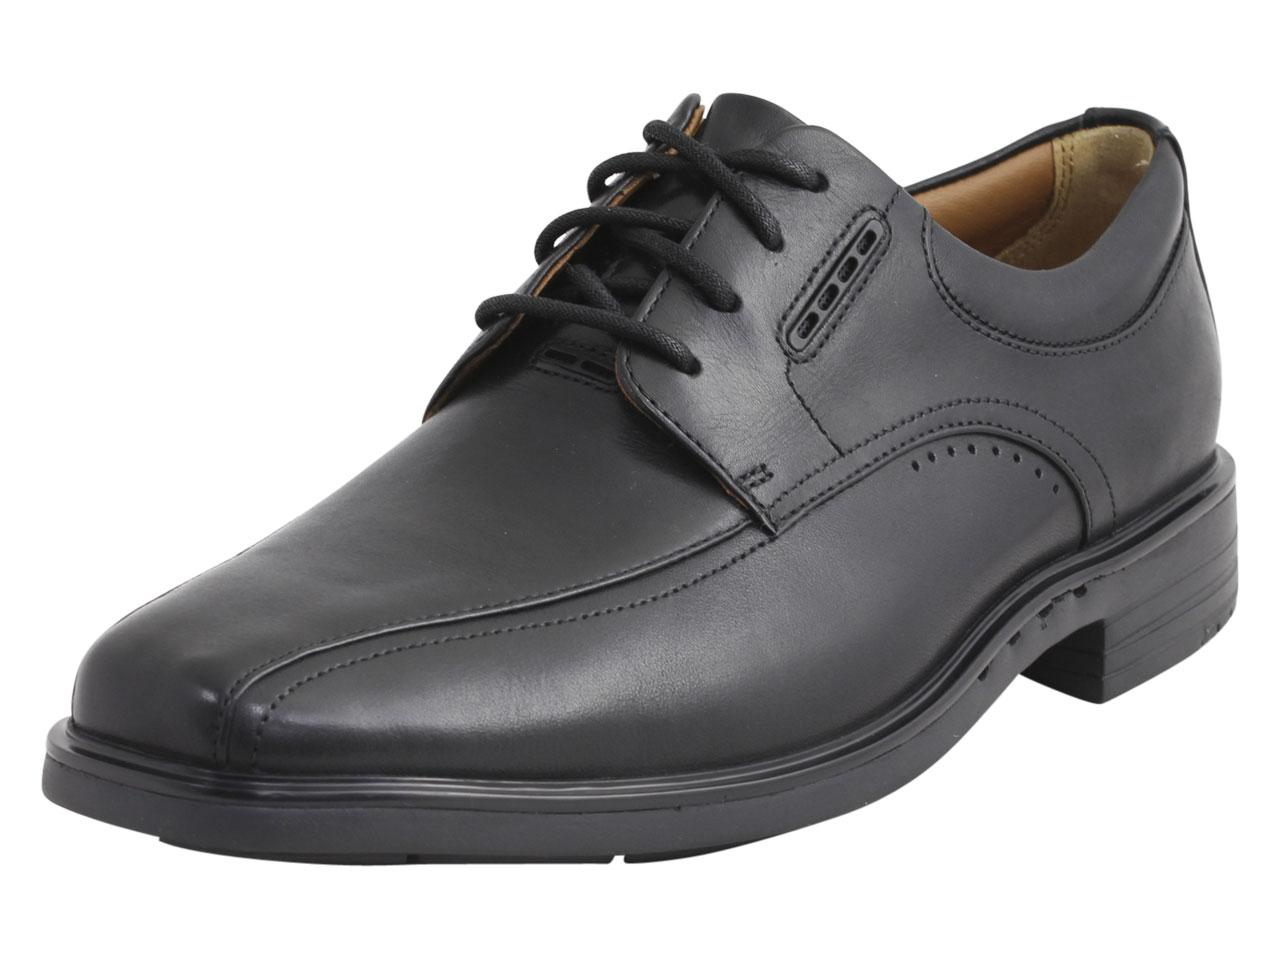 50582c85a1e Clarks Unstructured Men s UnKenneth Way Oxfords Shoes